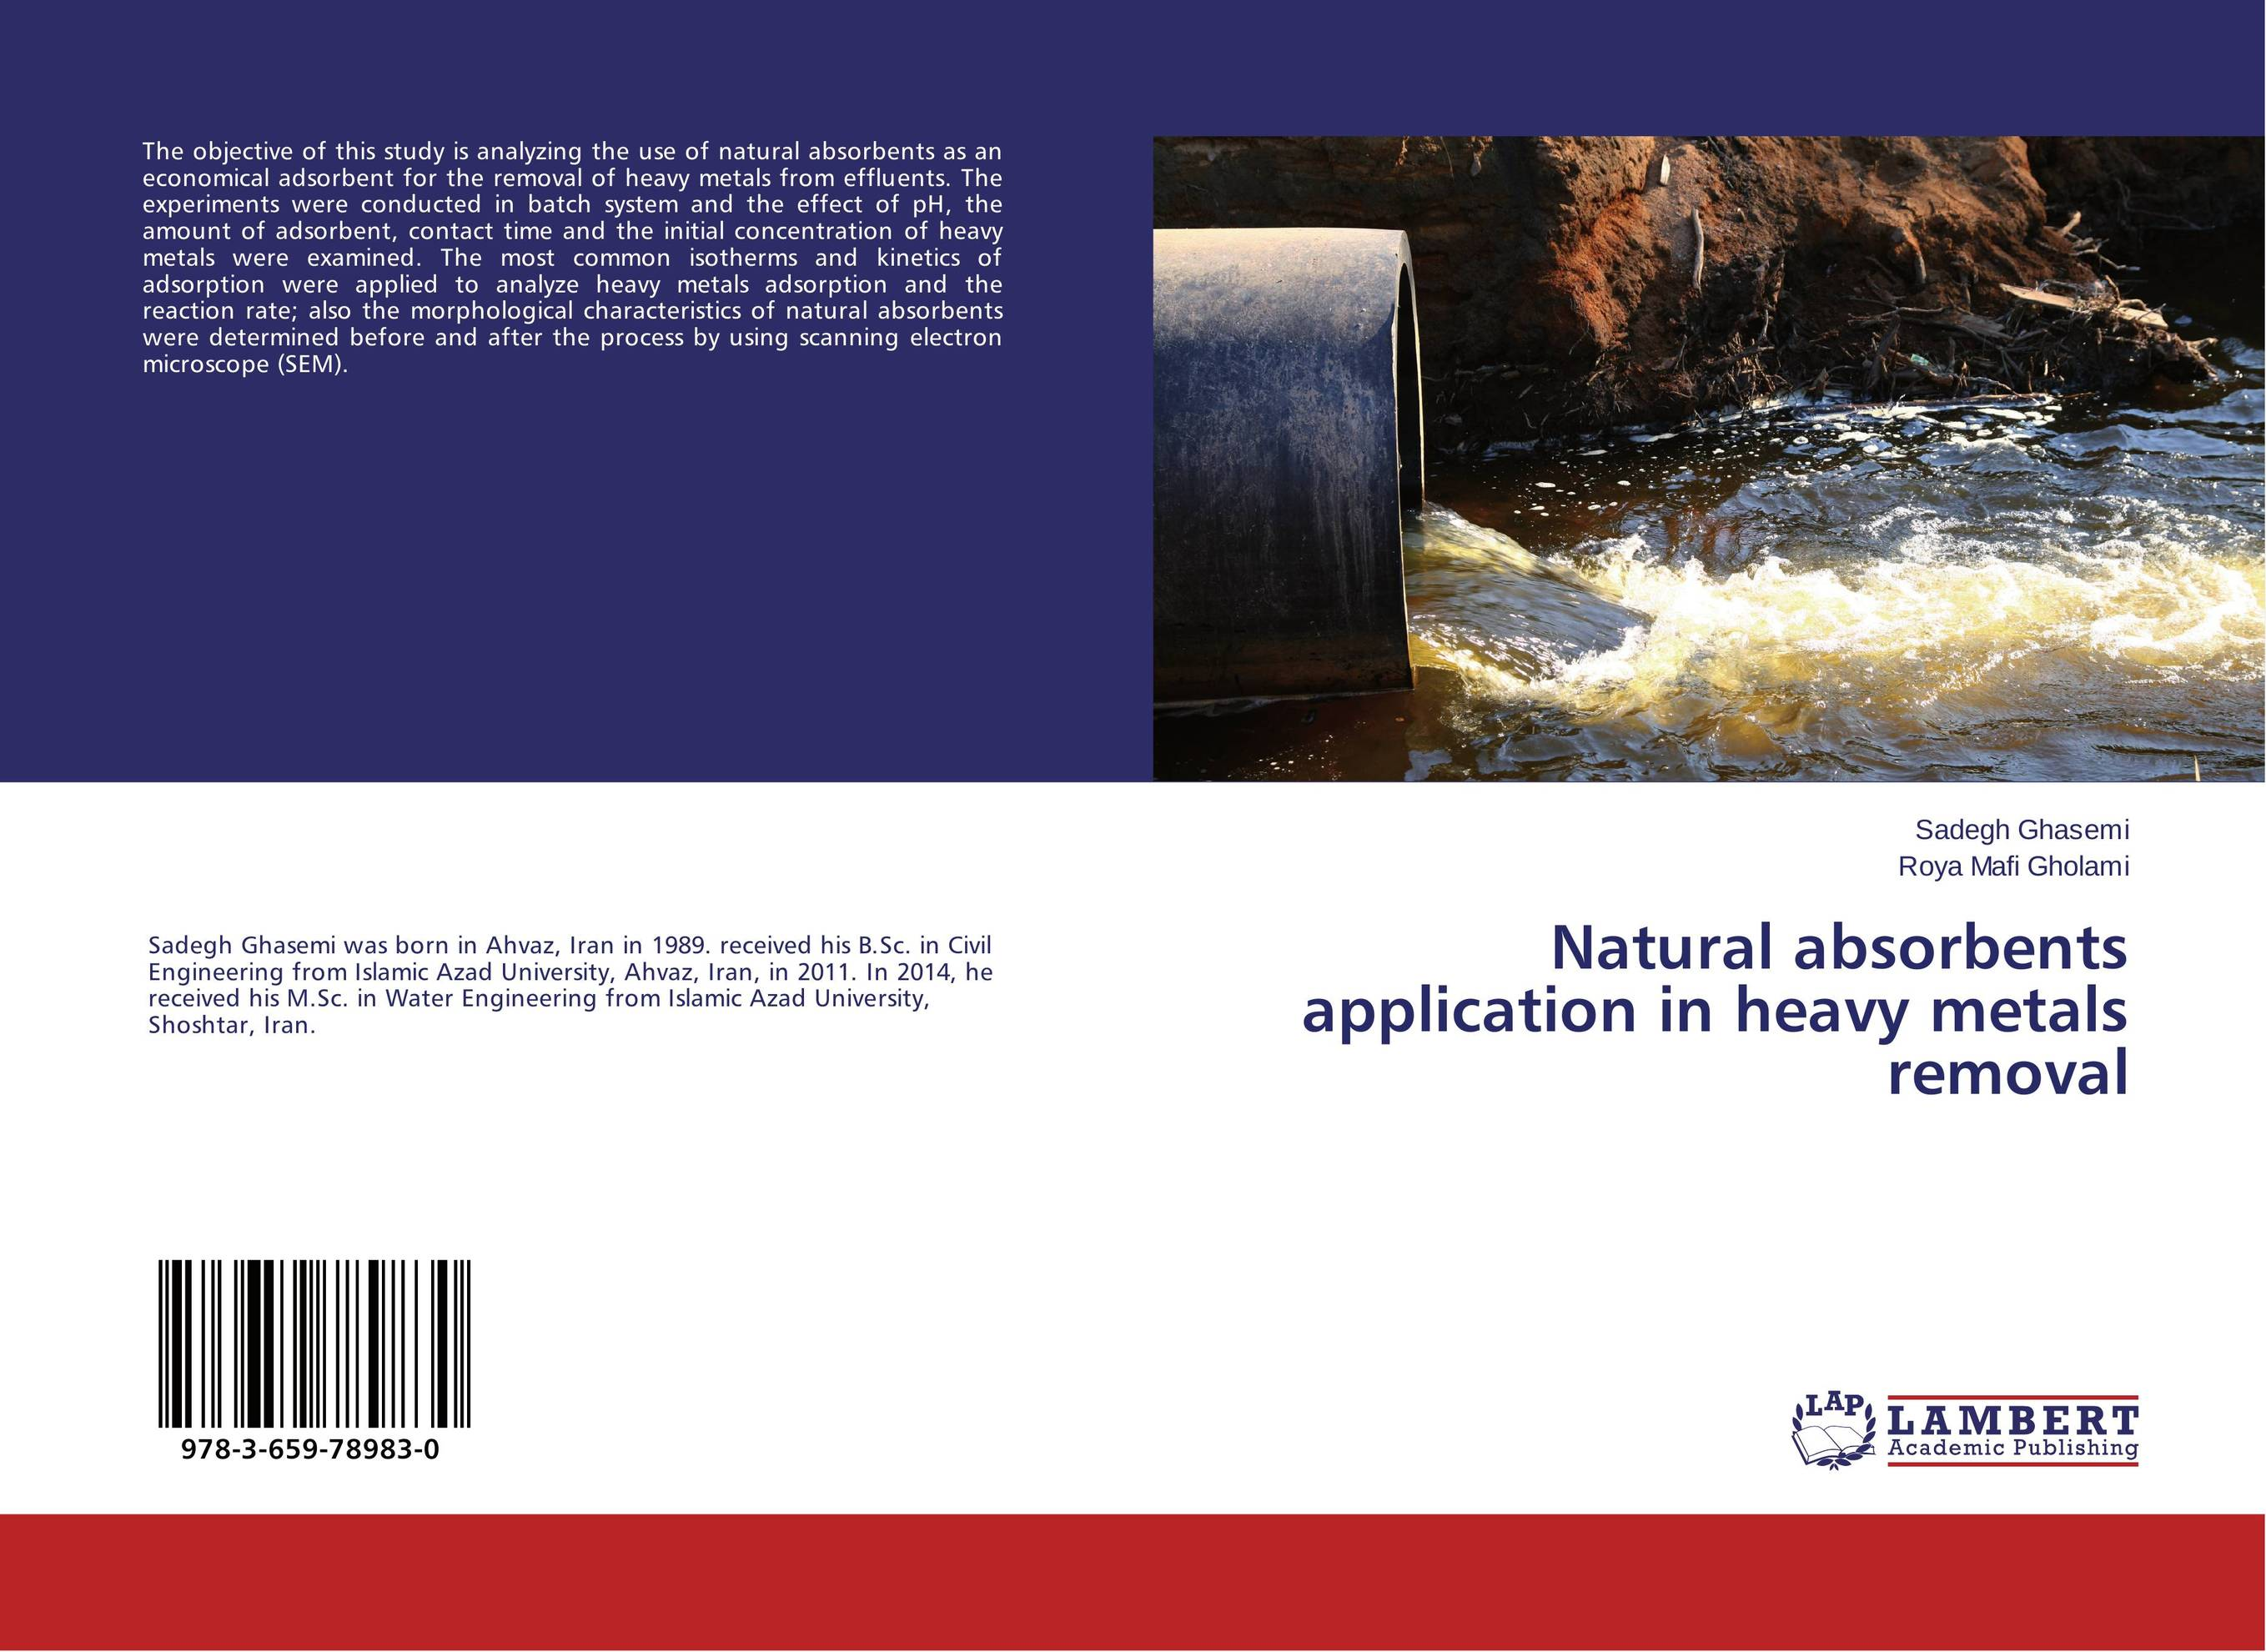 Natural absorbents application in heavy metals removal an epidemiological study of natural deaths in limpopo